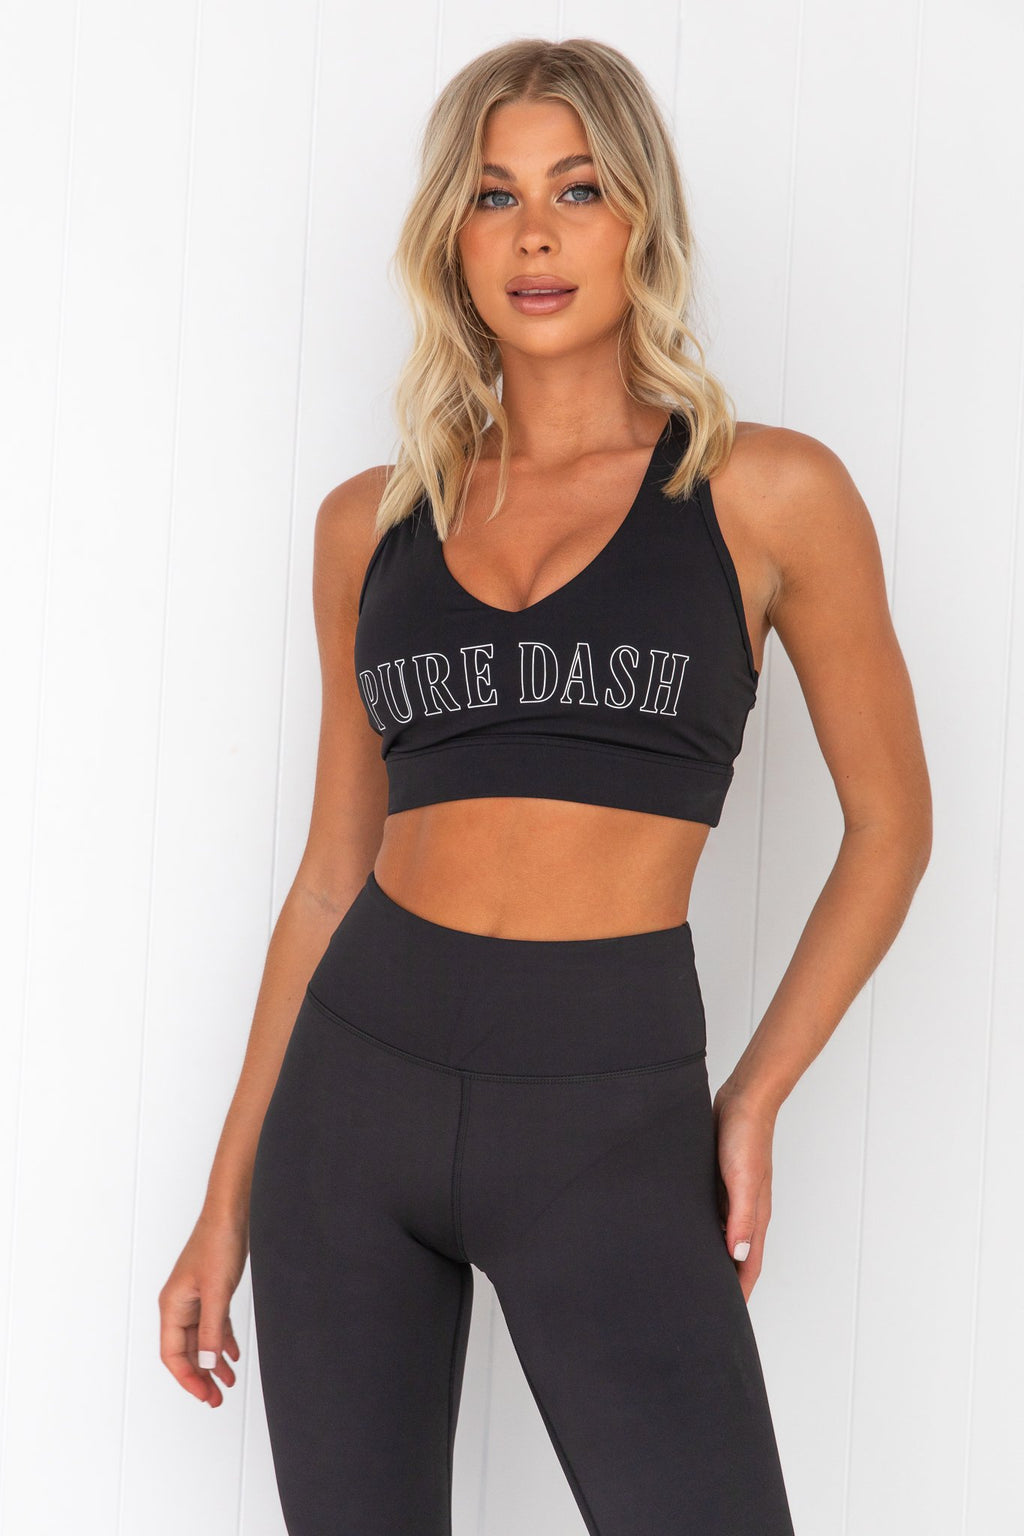 Easy Rider Muscle Tank - Silver Fox - PURE DASH